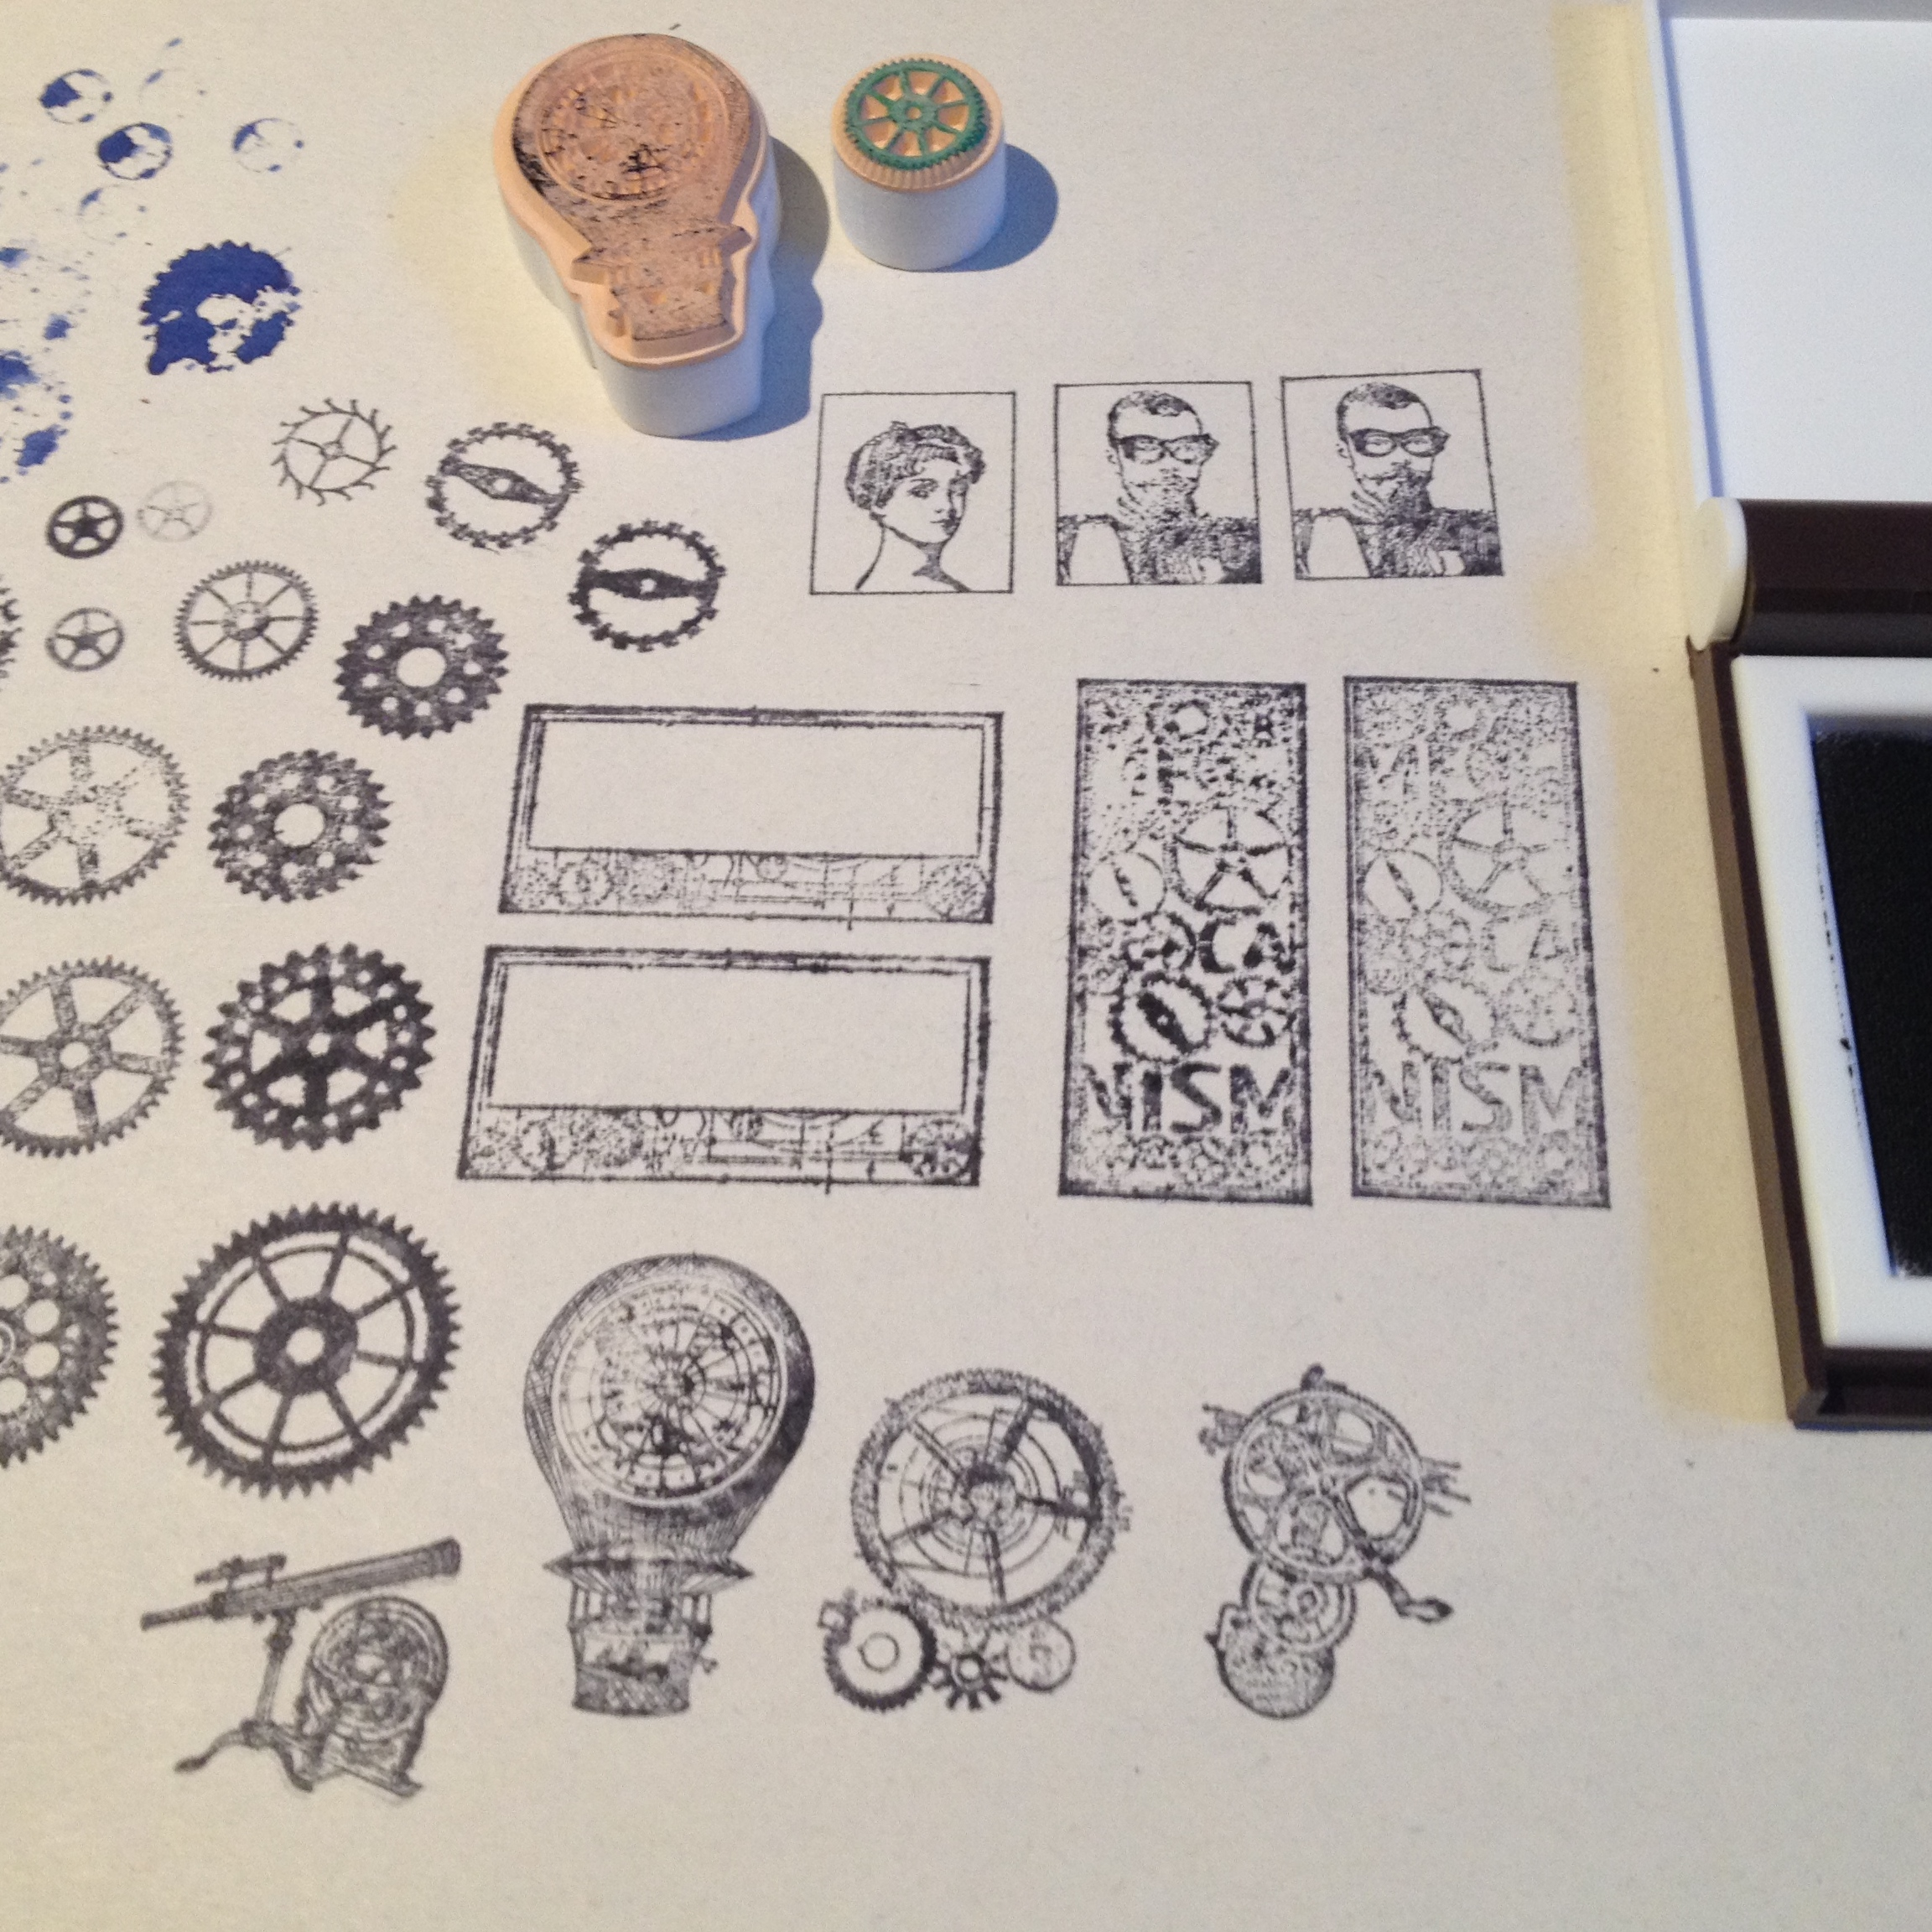 Seapegasus Blog » I Accidentally My Business Cards With Gears